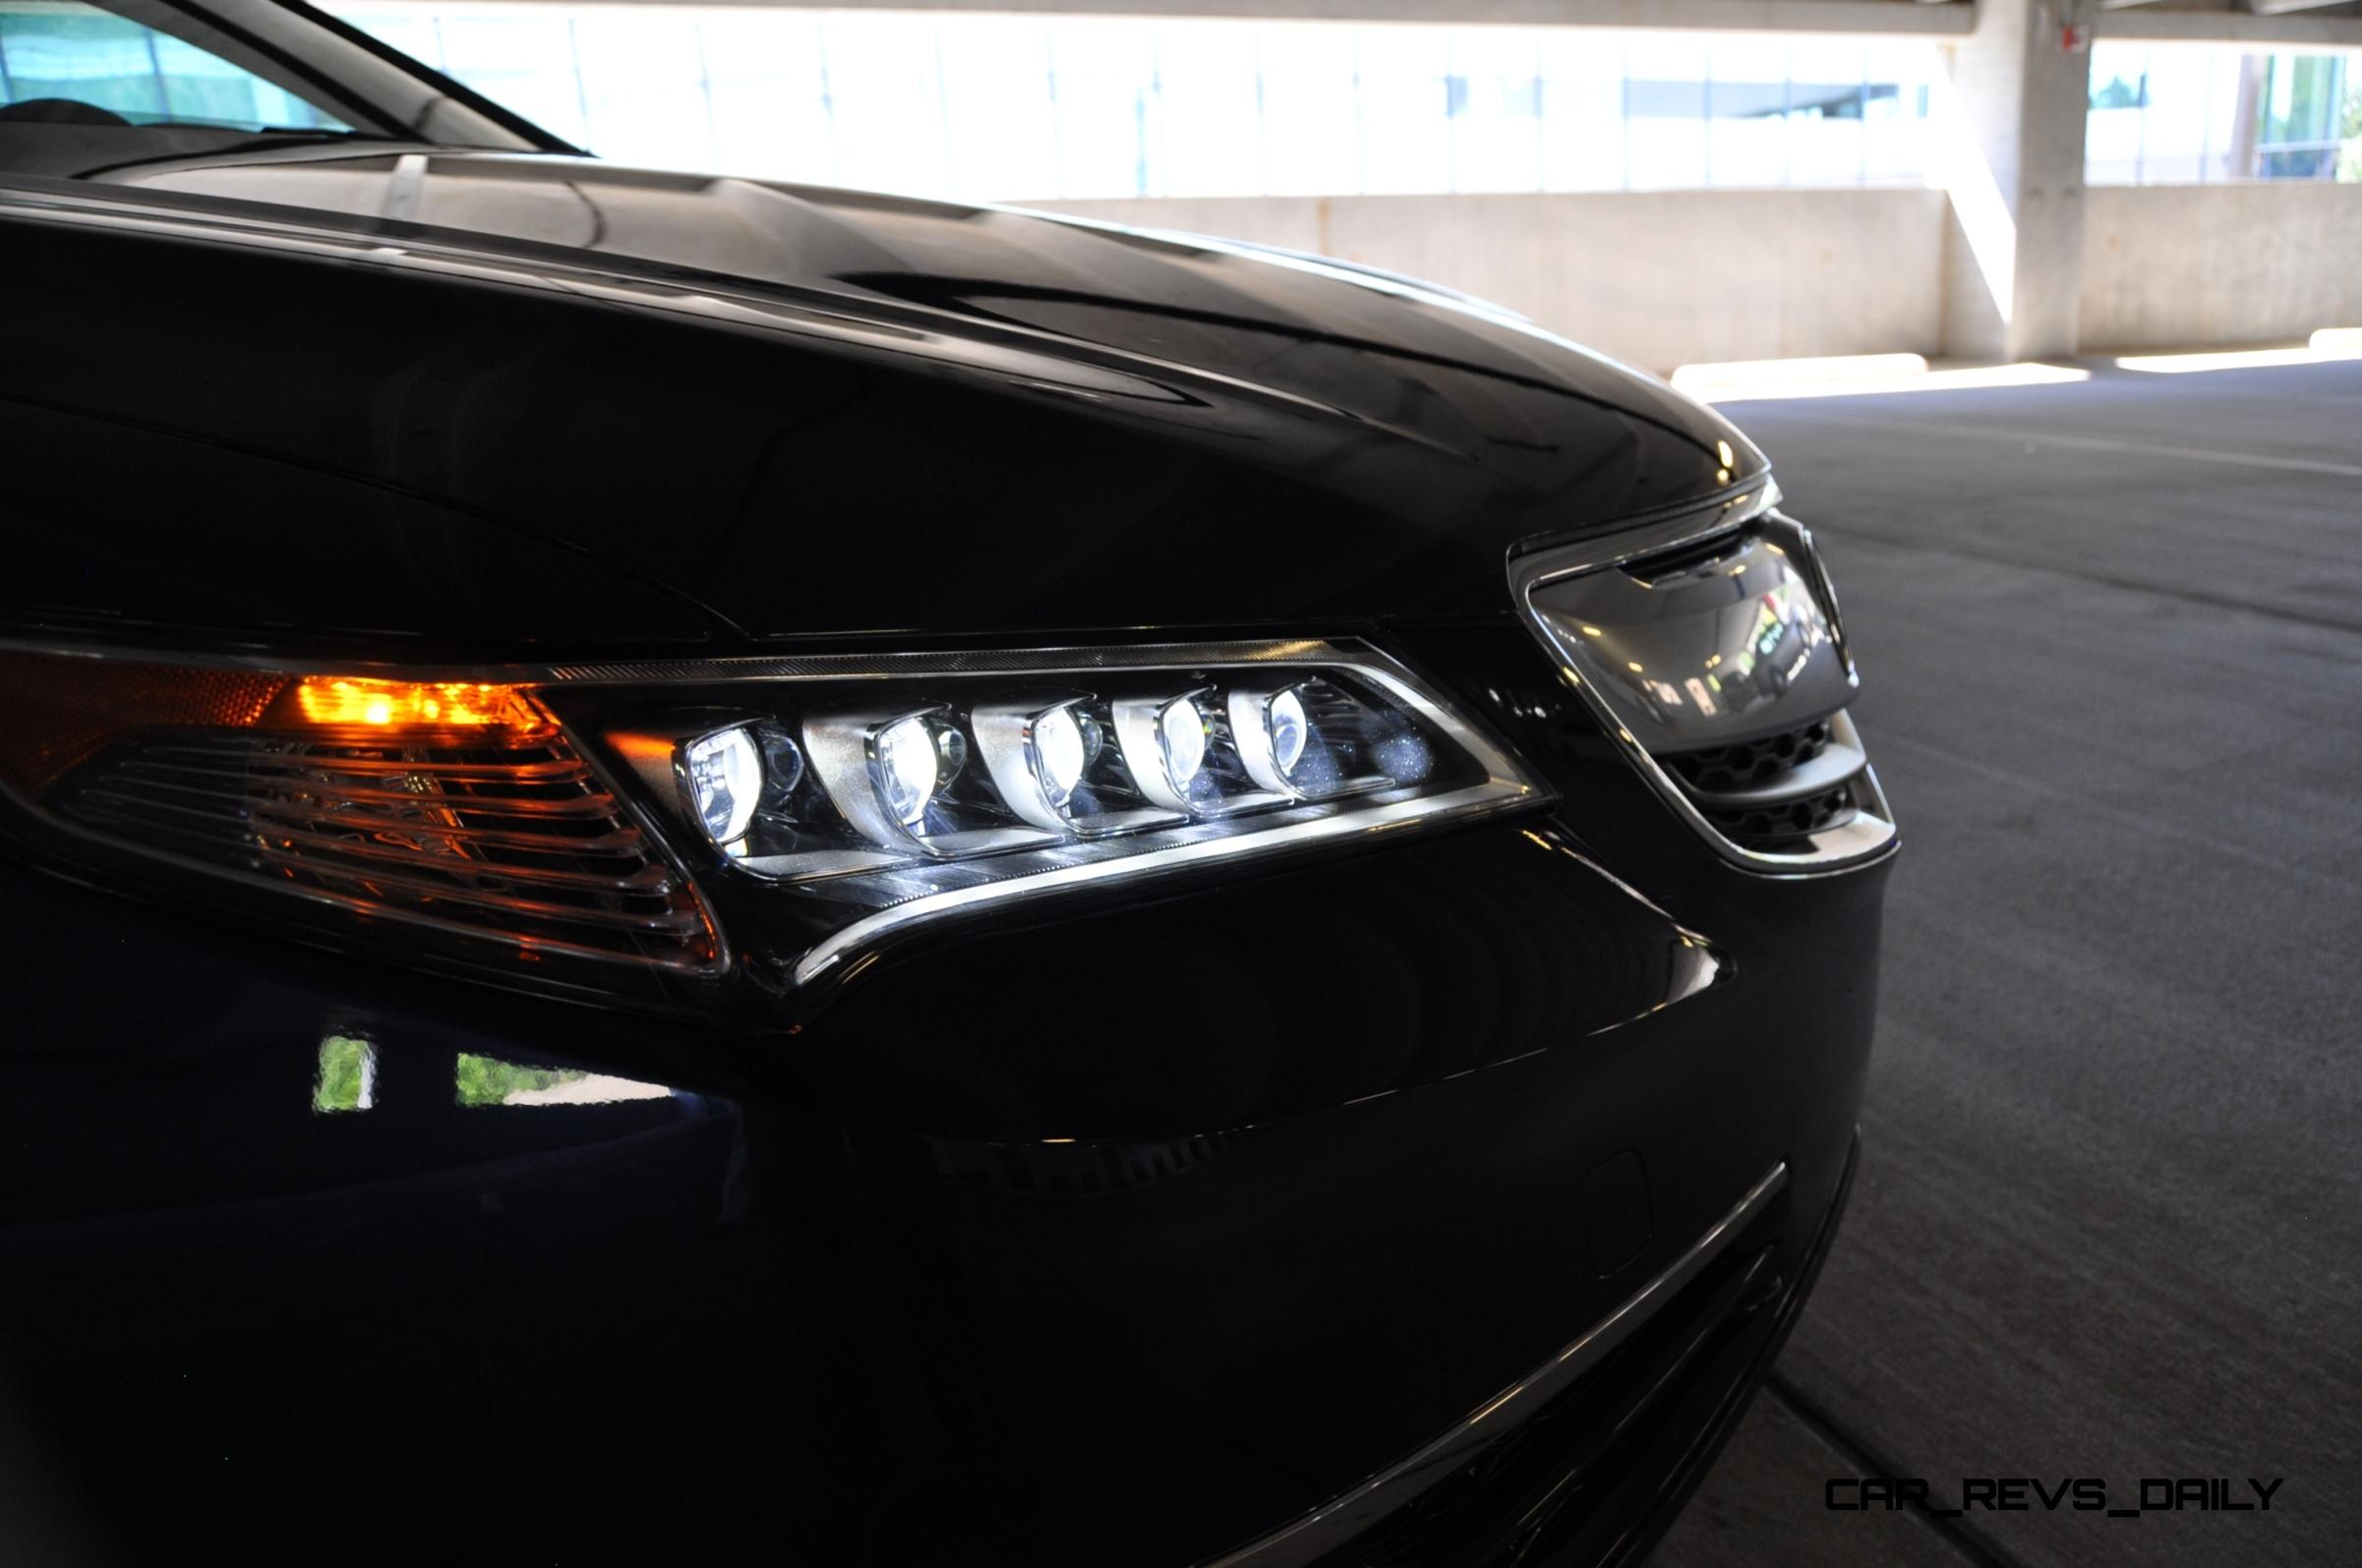 Road Test Review Acura TLX L Is Seriously Good Fun Quick - Acura tlx led headlights